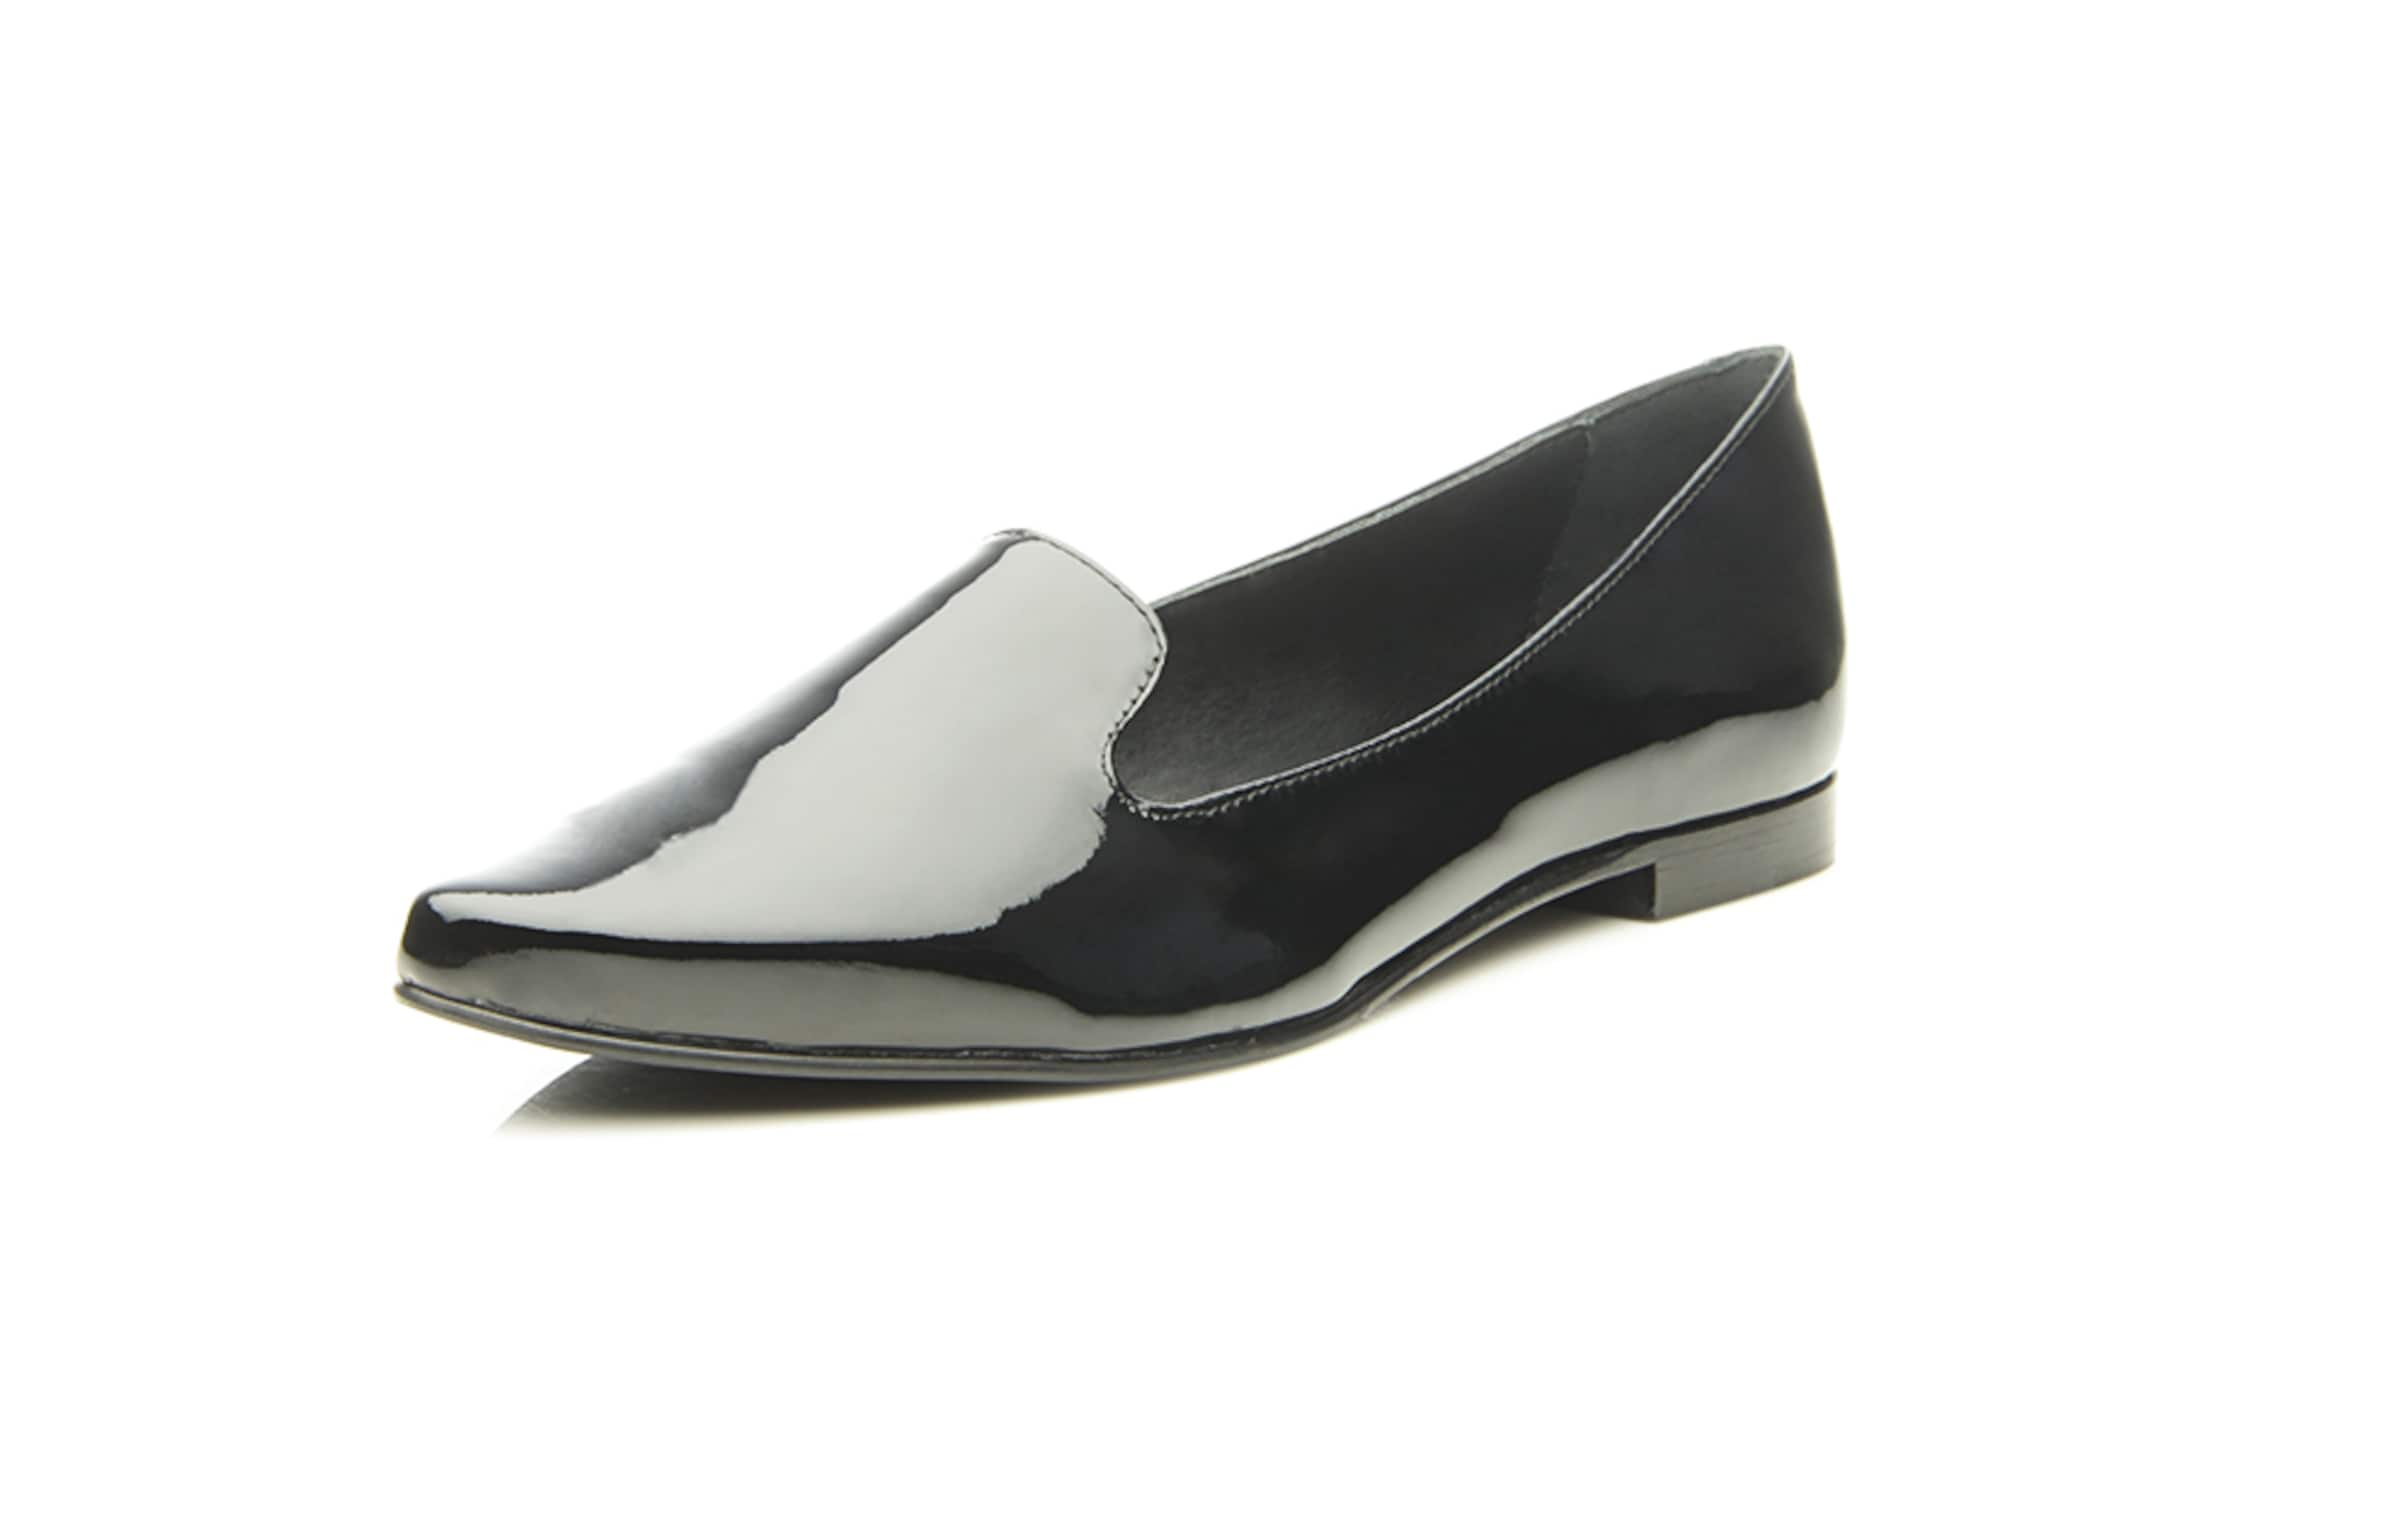 SHOEPASSION Loafer No. 47 WL Hohe Qualität